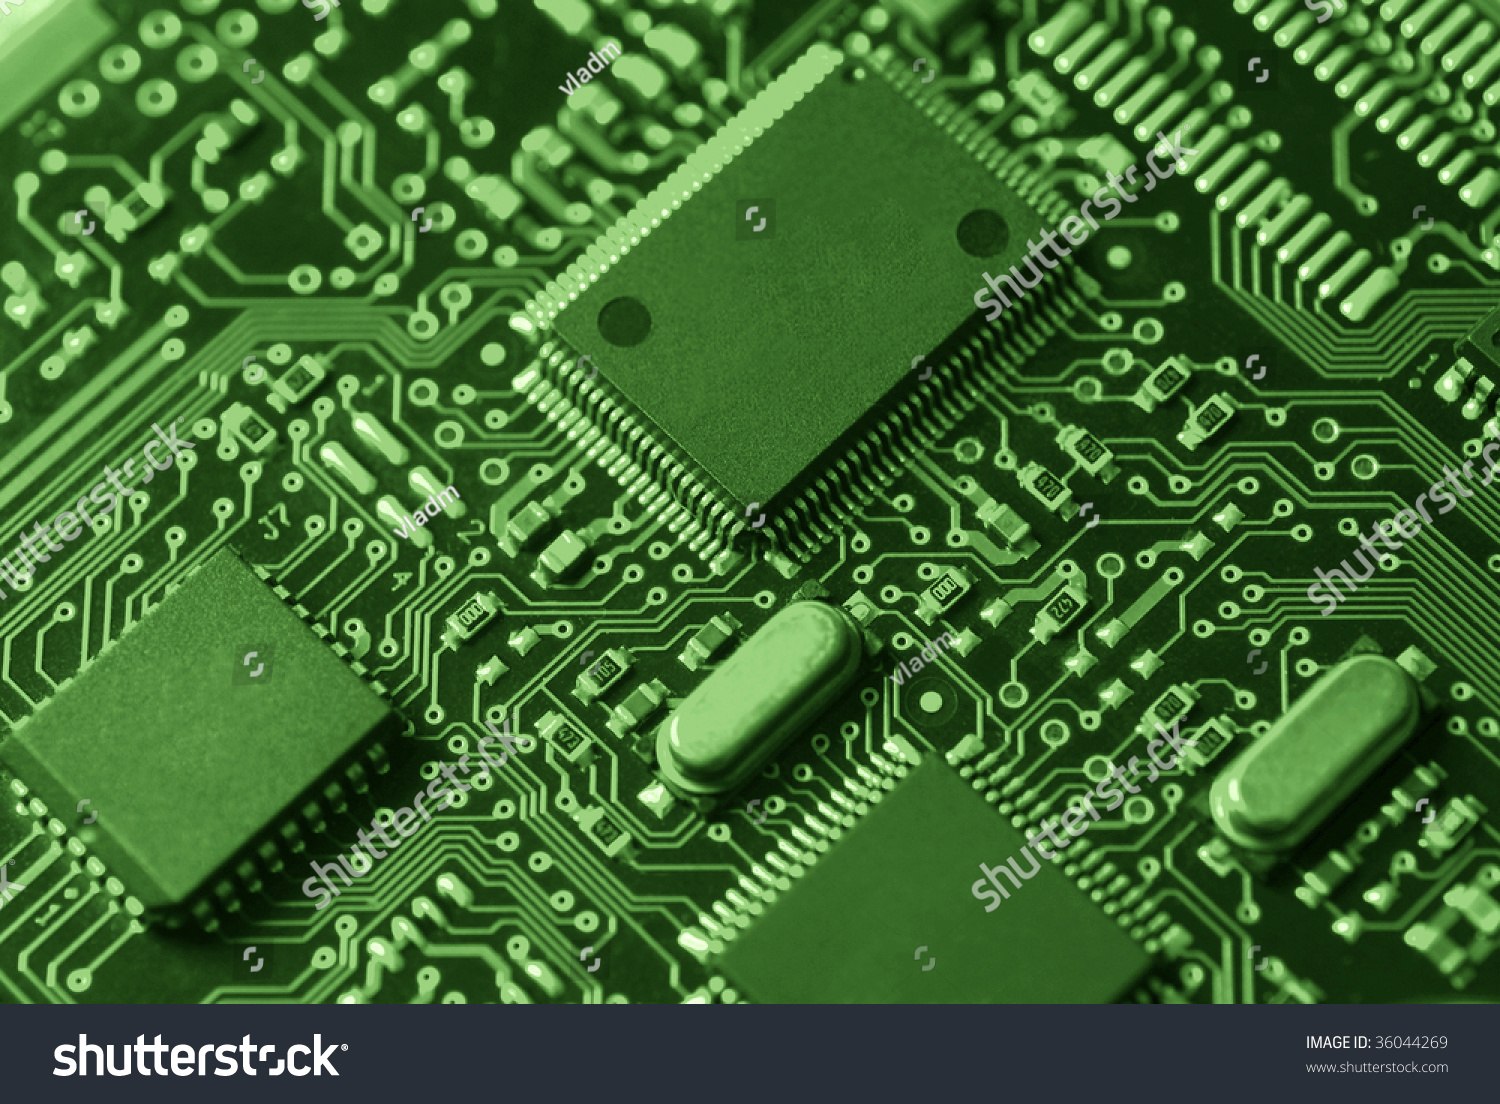 Green High Tech Mother Board Chip Stock Photo 36044269 ...